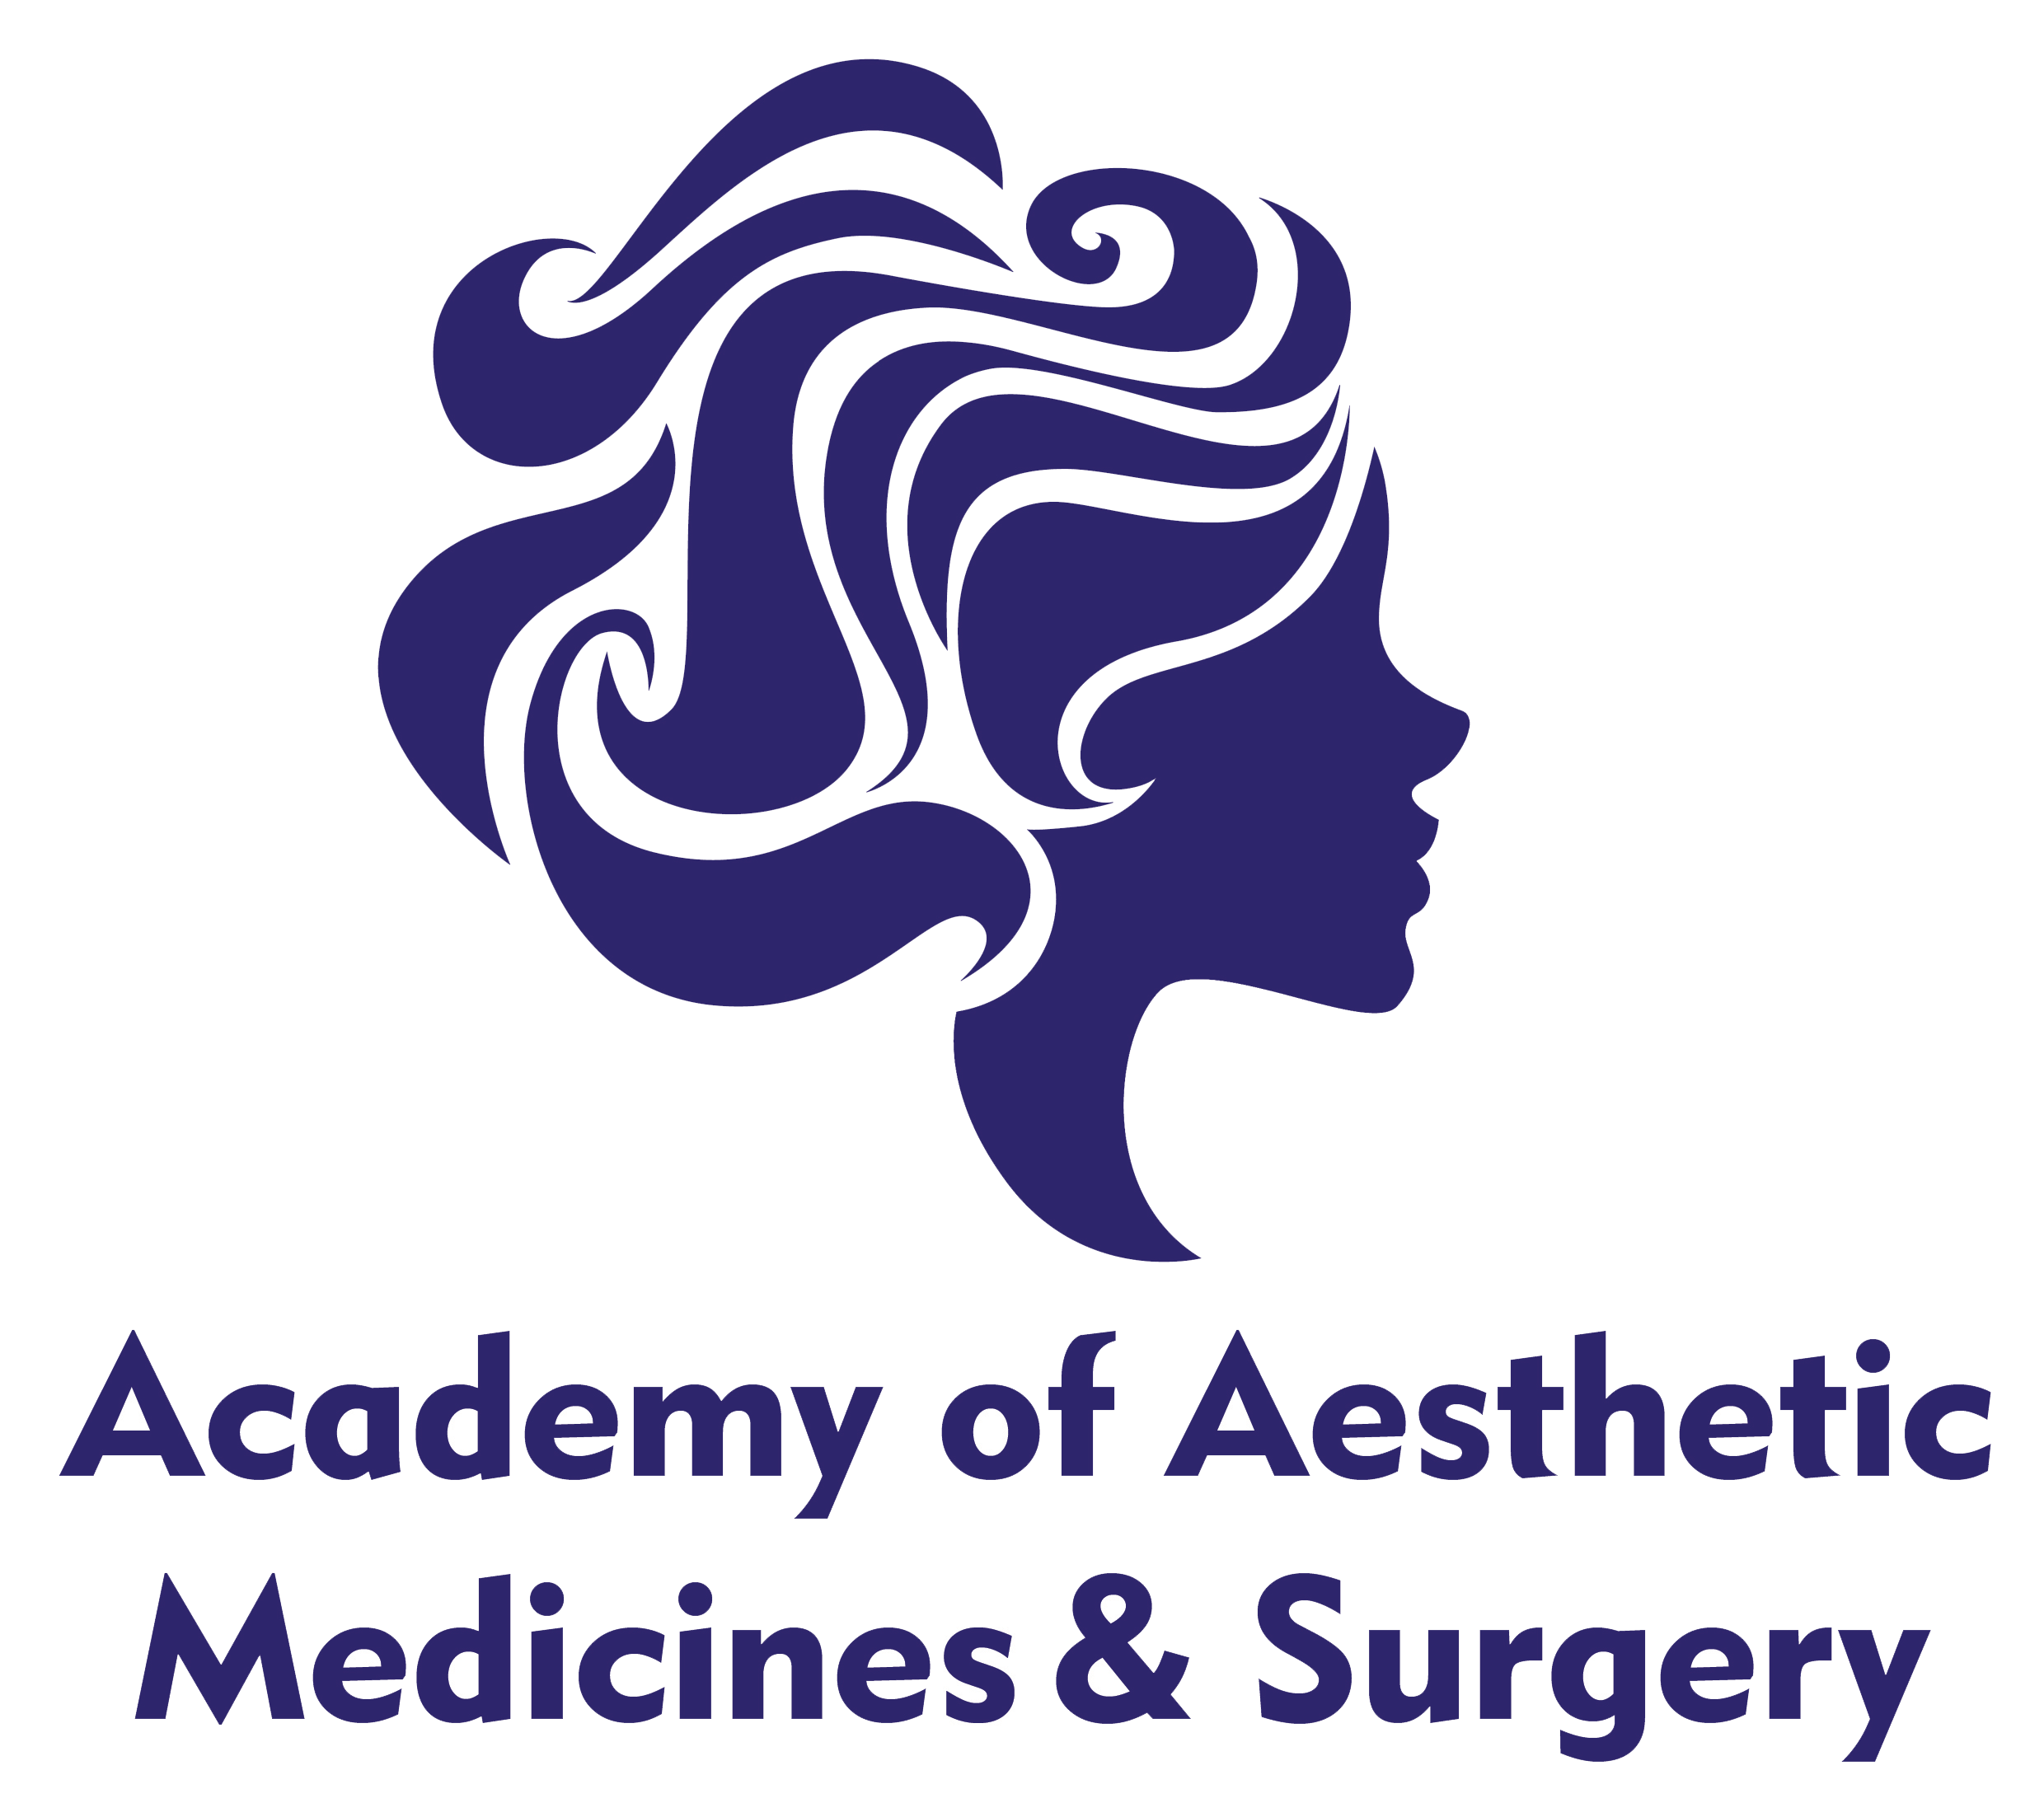 Academy of Aesthetic Medicines & Surgery